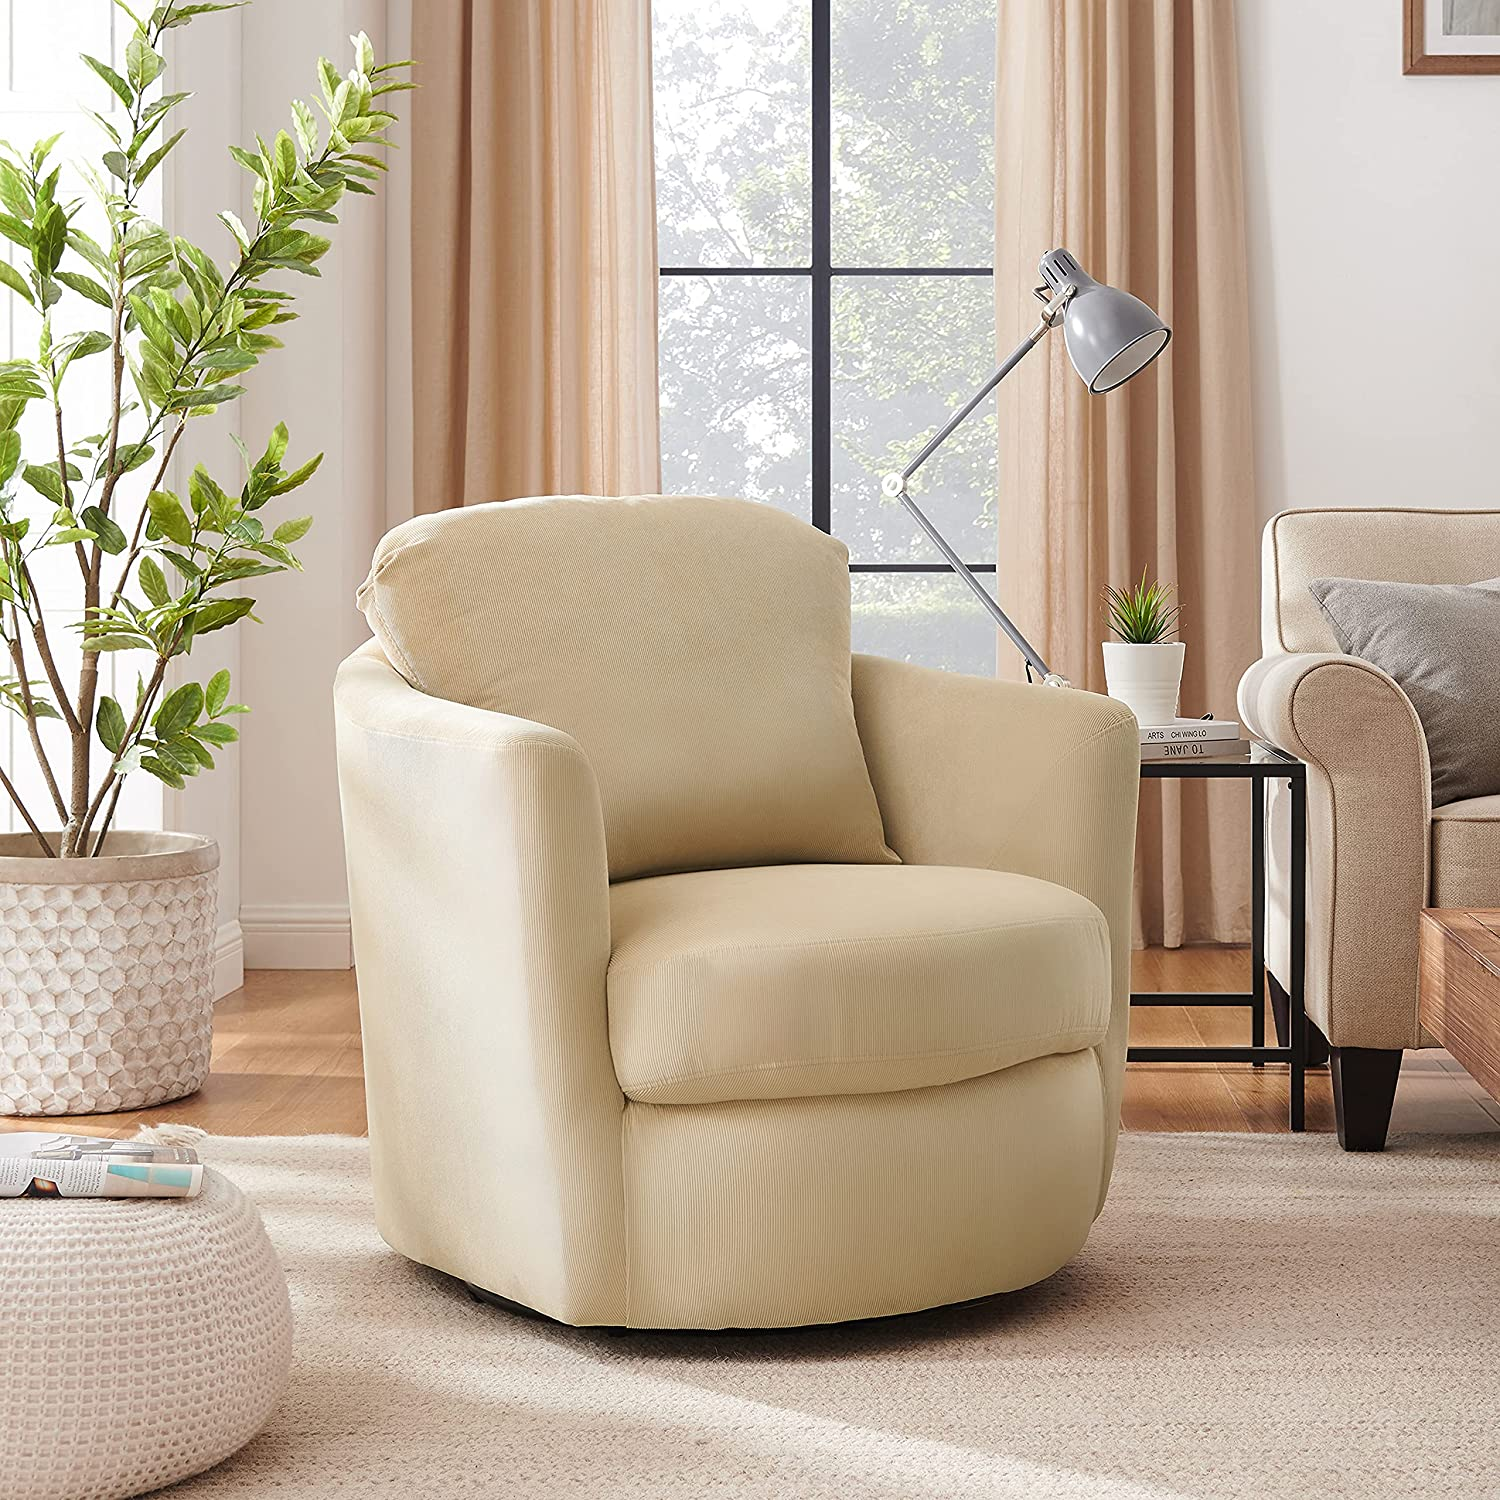 Volans Swivel Chair Modern Corduroy Fashion Special sale item Upholstery Fabric Barrel Sw